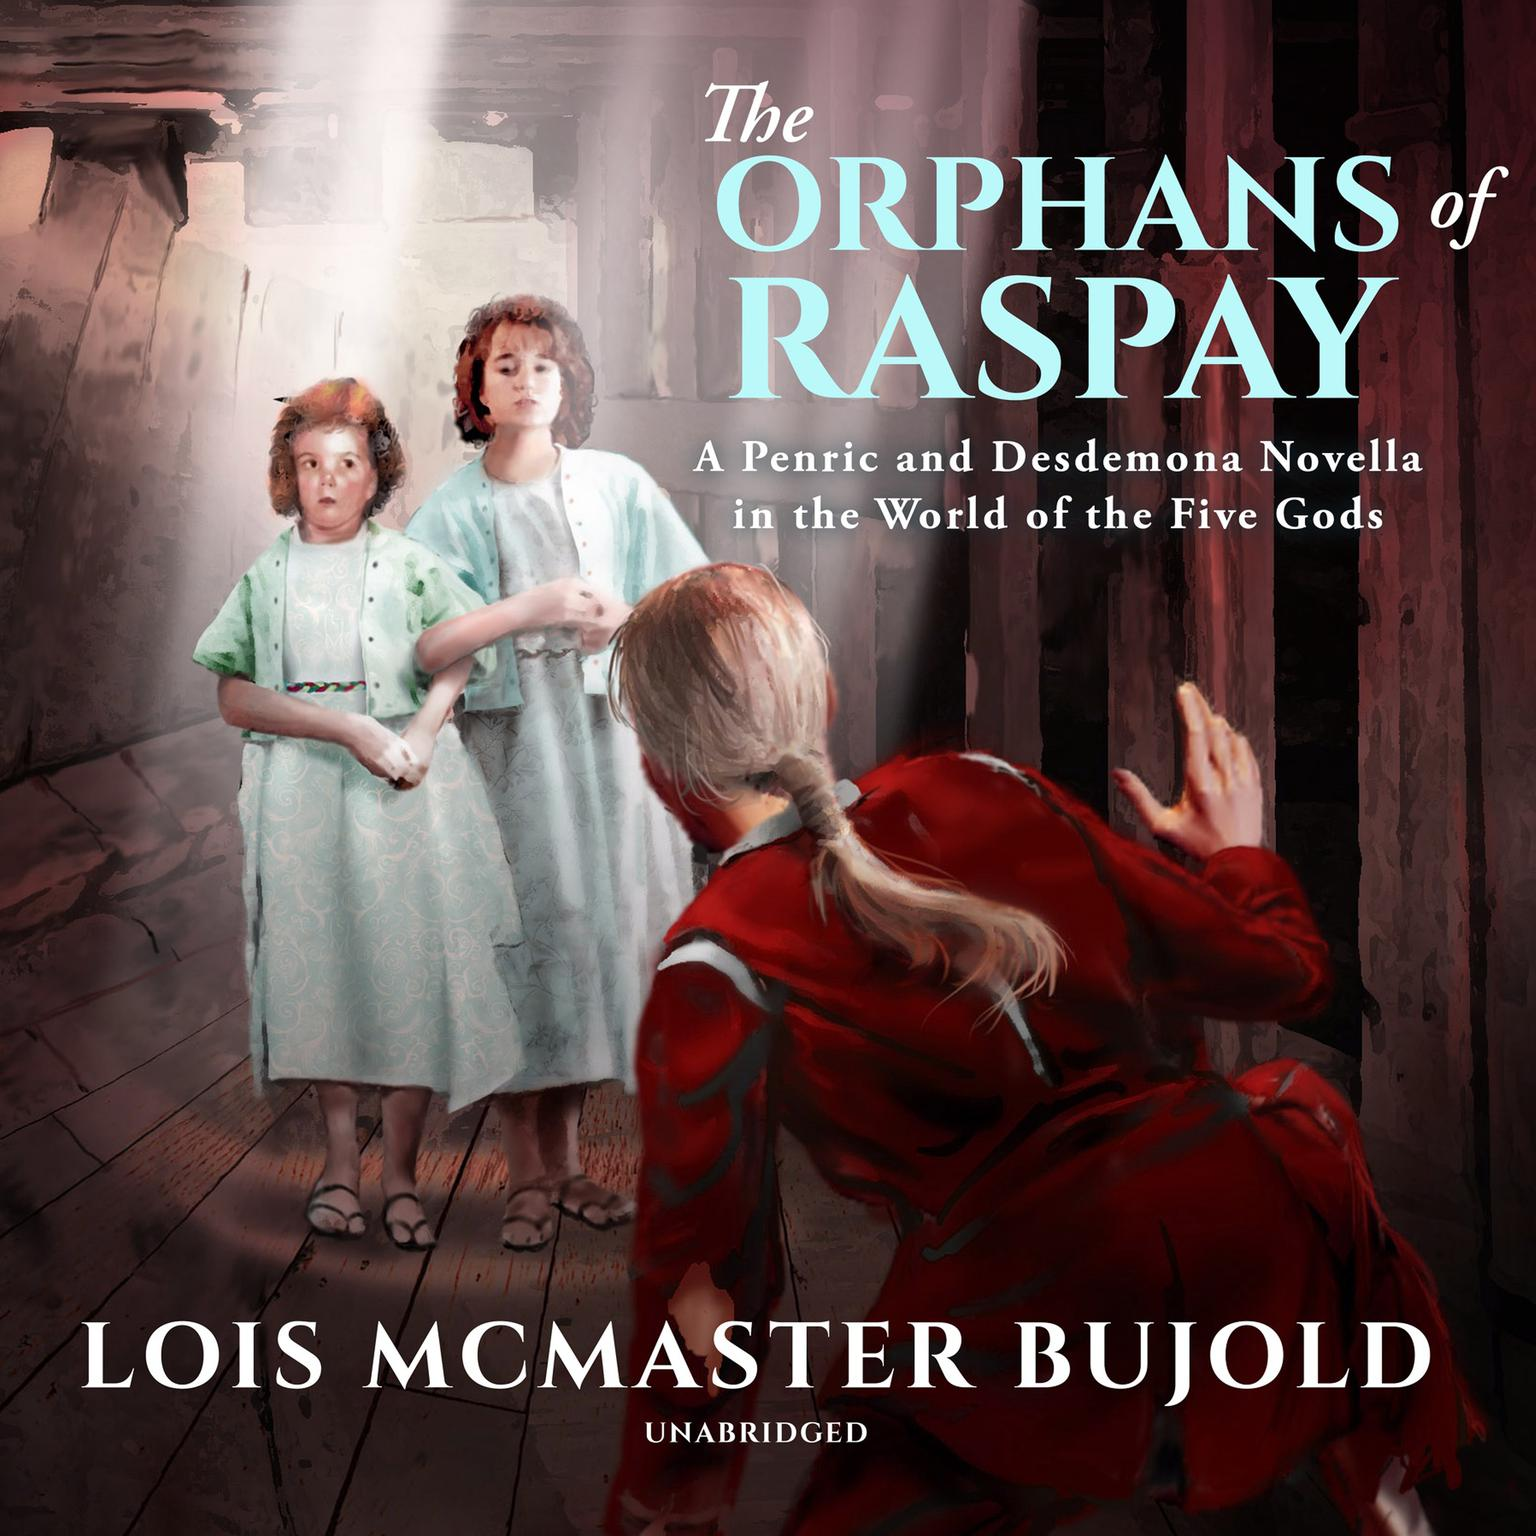 The Orphans of Raspay: A Penric and Desdemona Novella in the World of the Five Gods Audiobook, by Lois McMaster Bujold